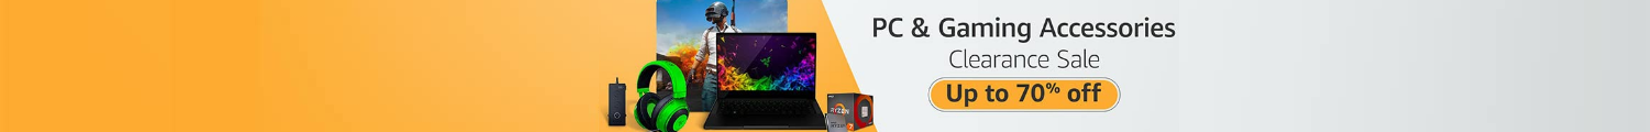 Up to 70% off PC & Gaming Accessories